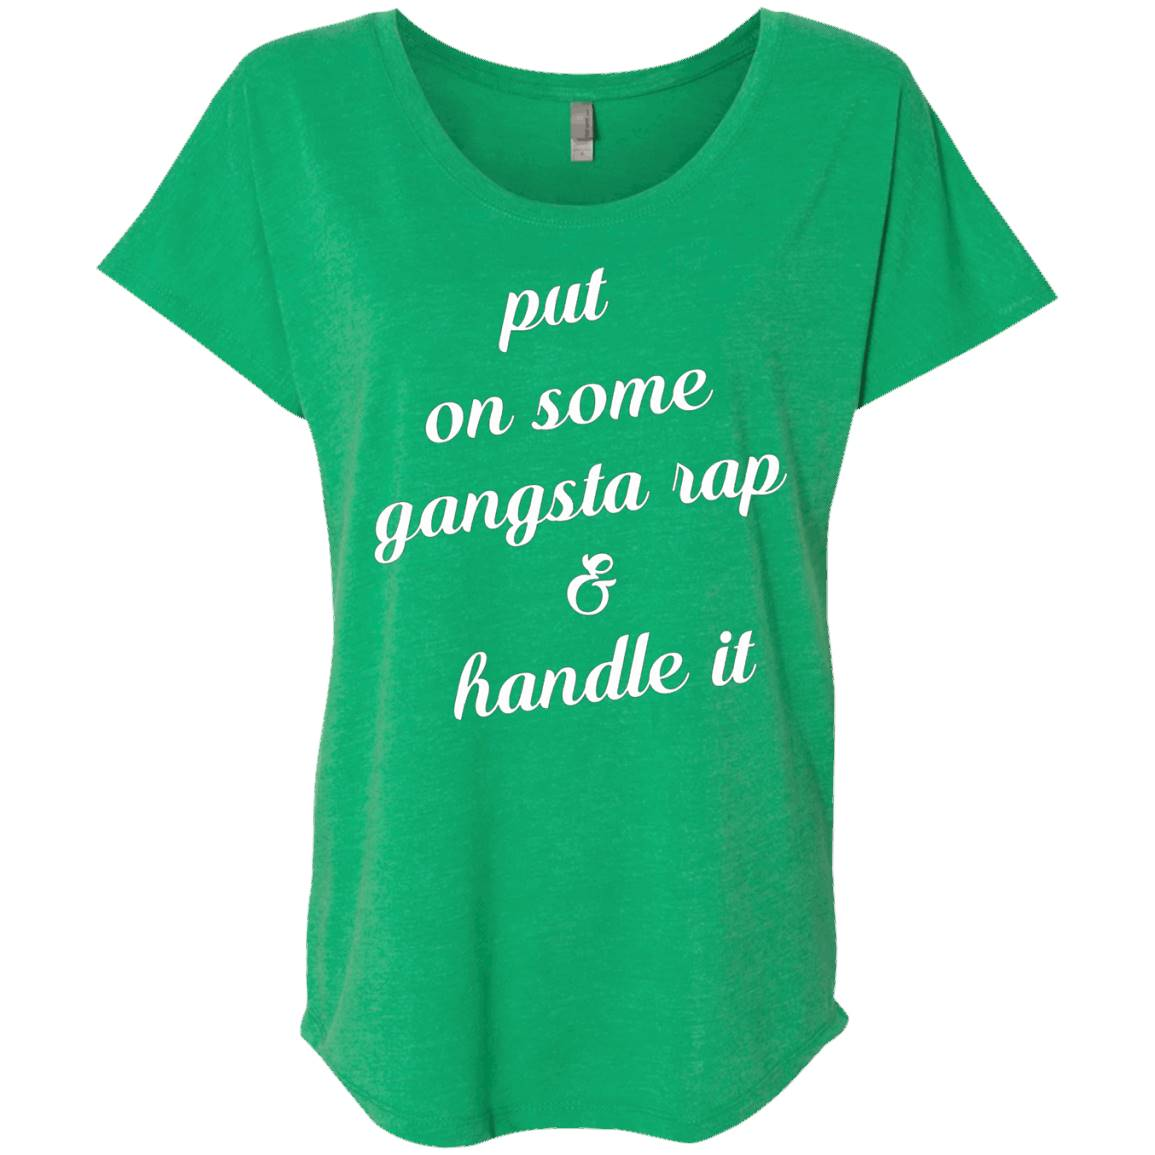 Put on some gangsta rap and handle it T-Shirt – Labor day